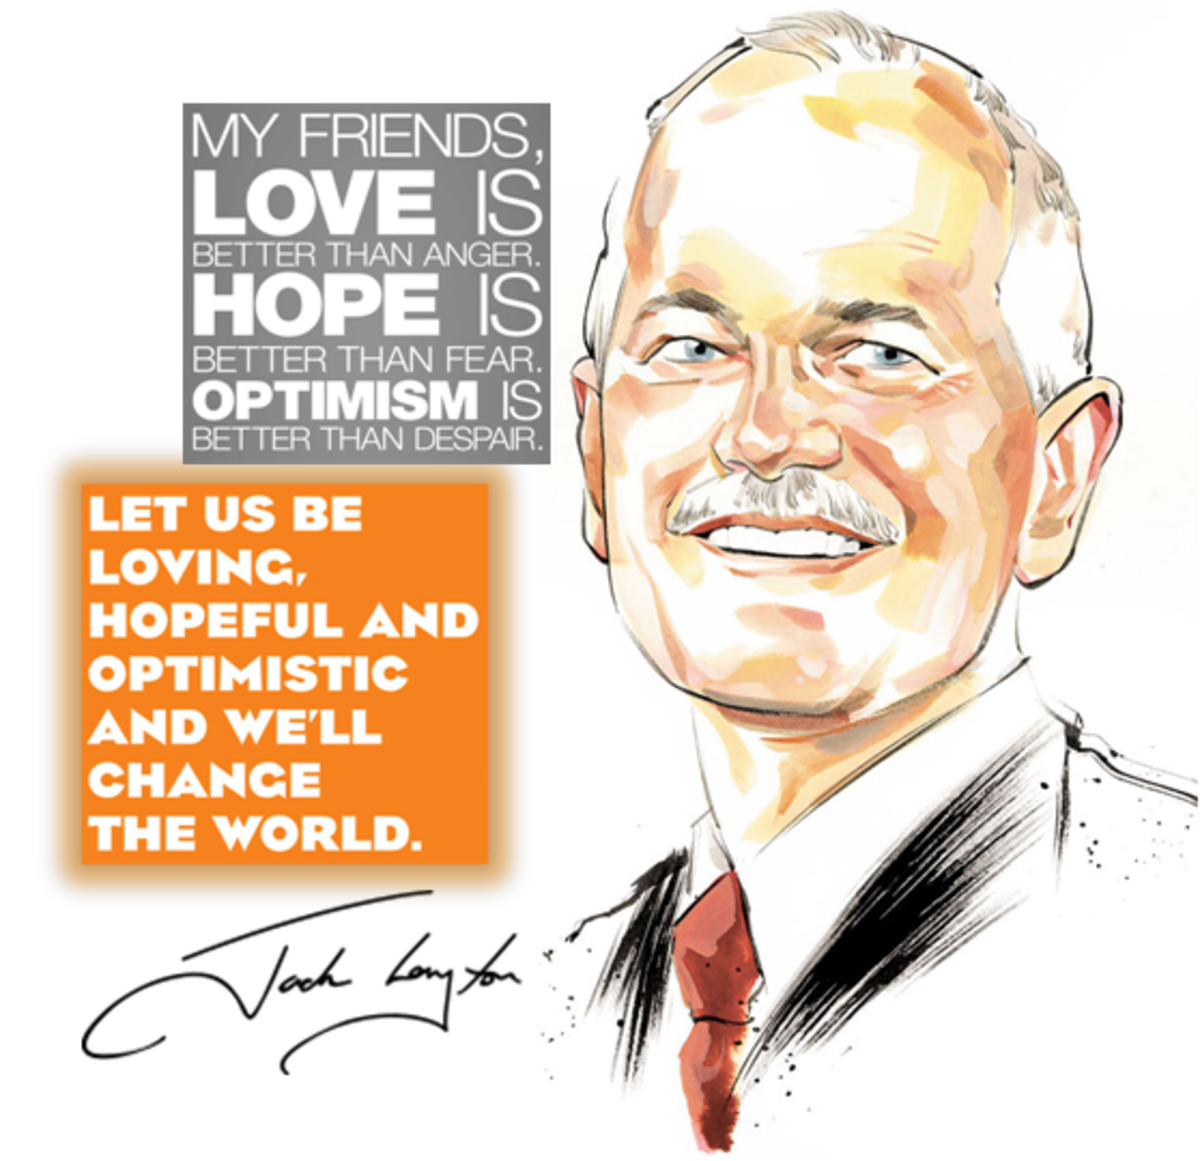 Jack Layton's final words from his open letter to Canadians, 22 August 2011